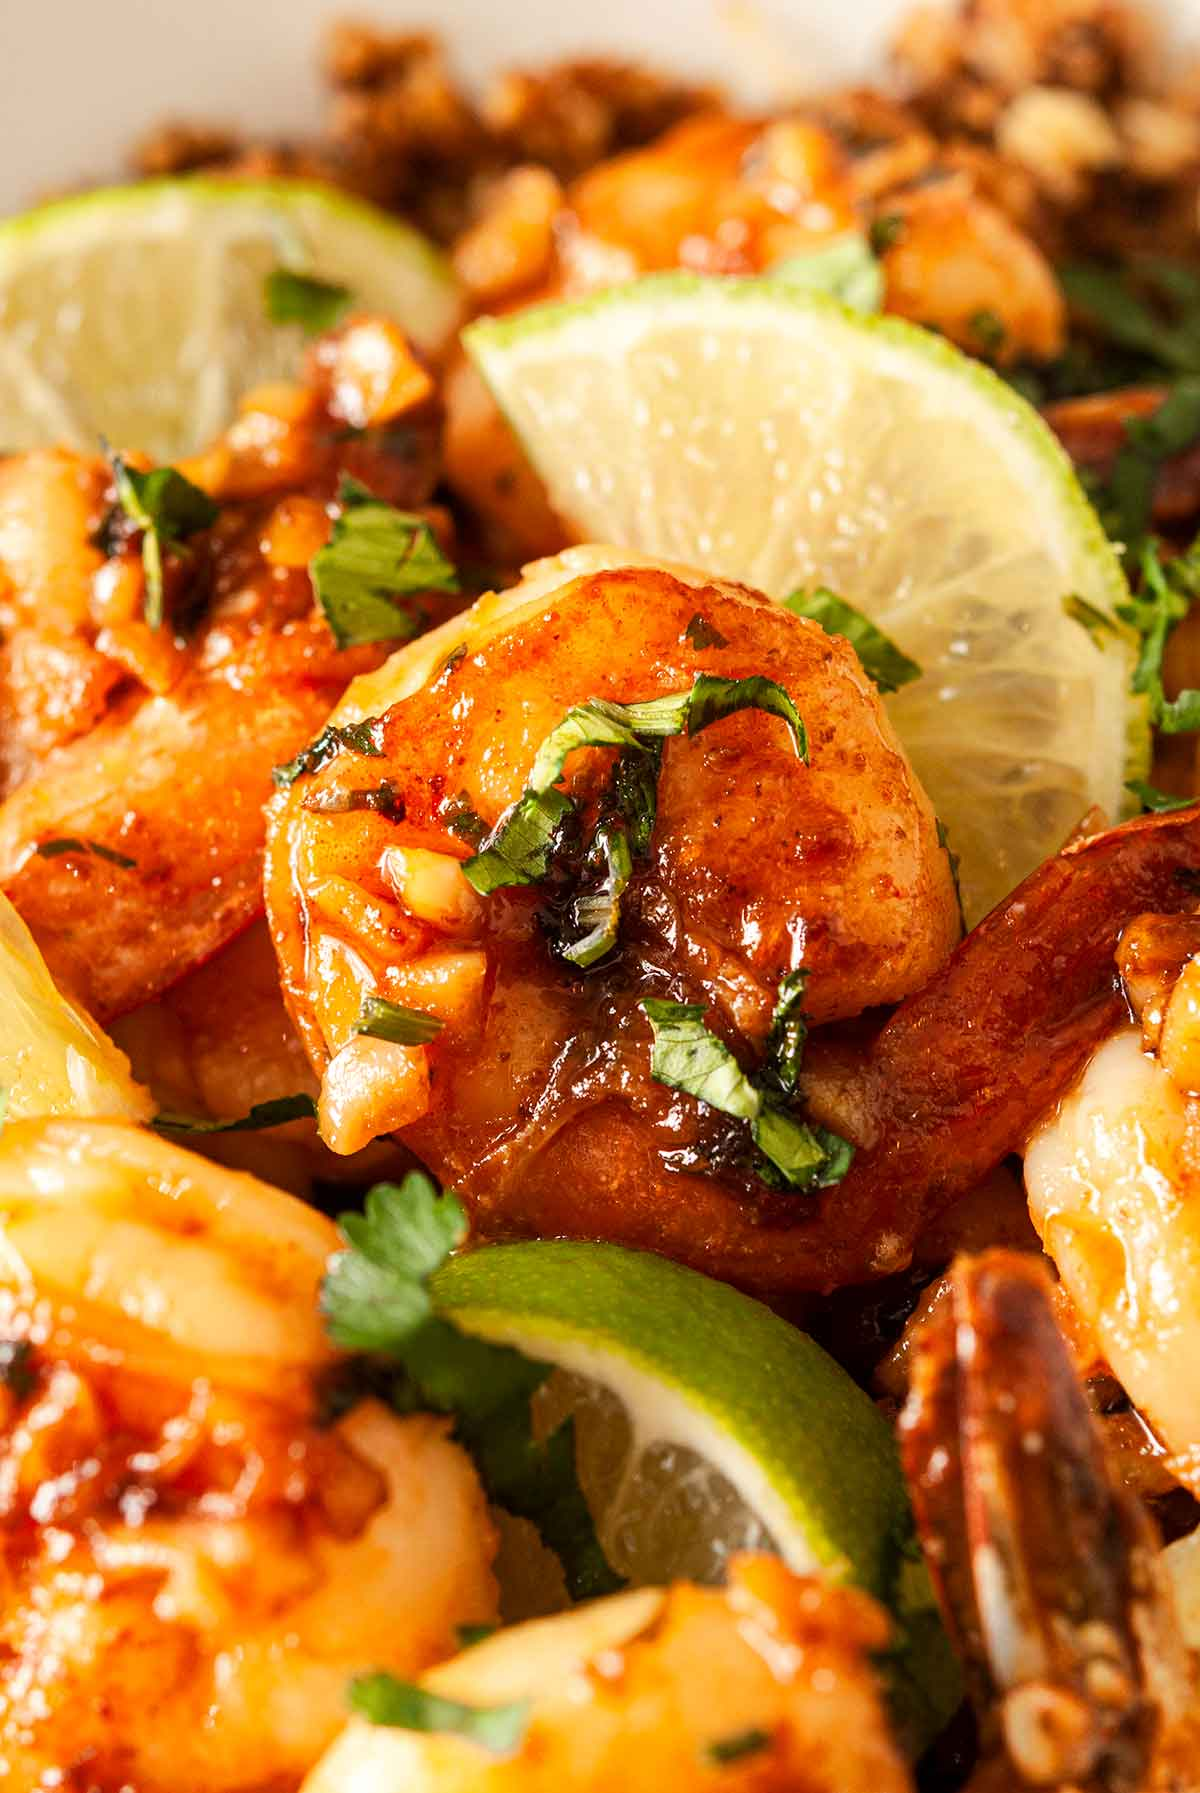 A honey lime shrimp in a bowl surrounded by lime slices and other cooked shrimp.